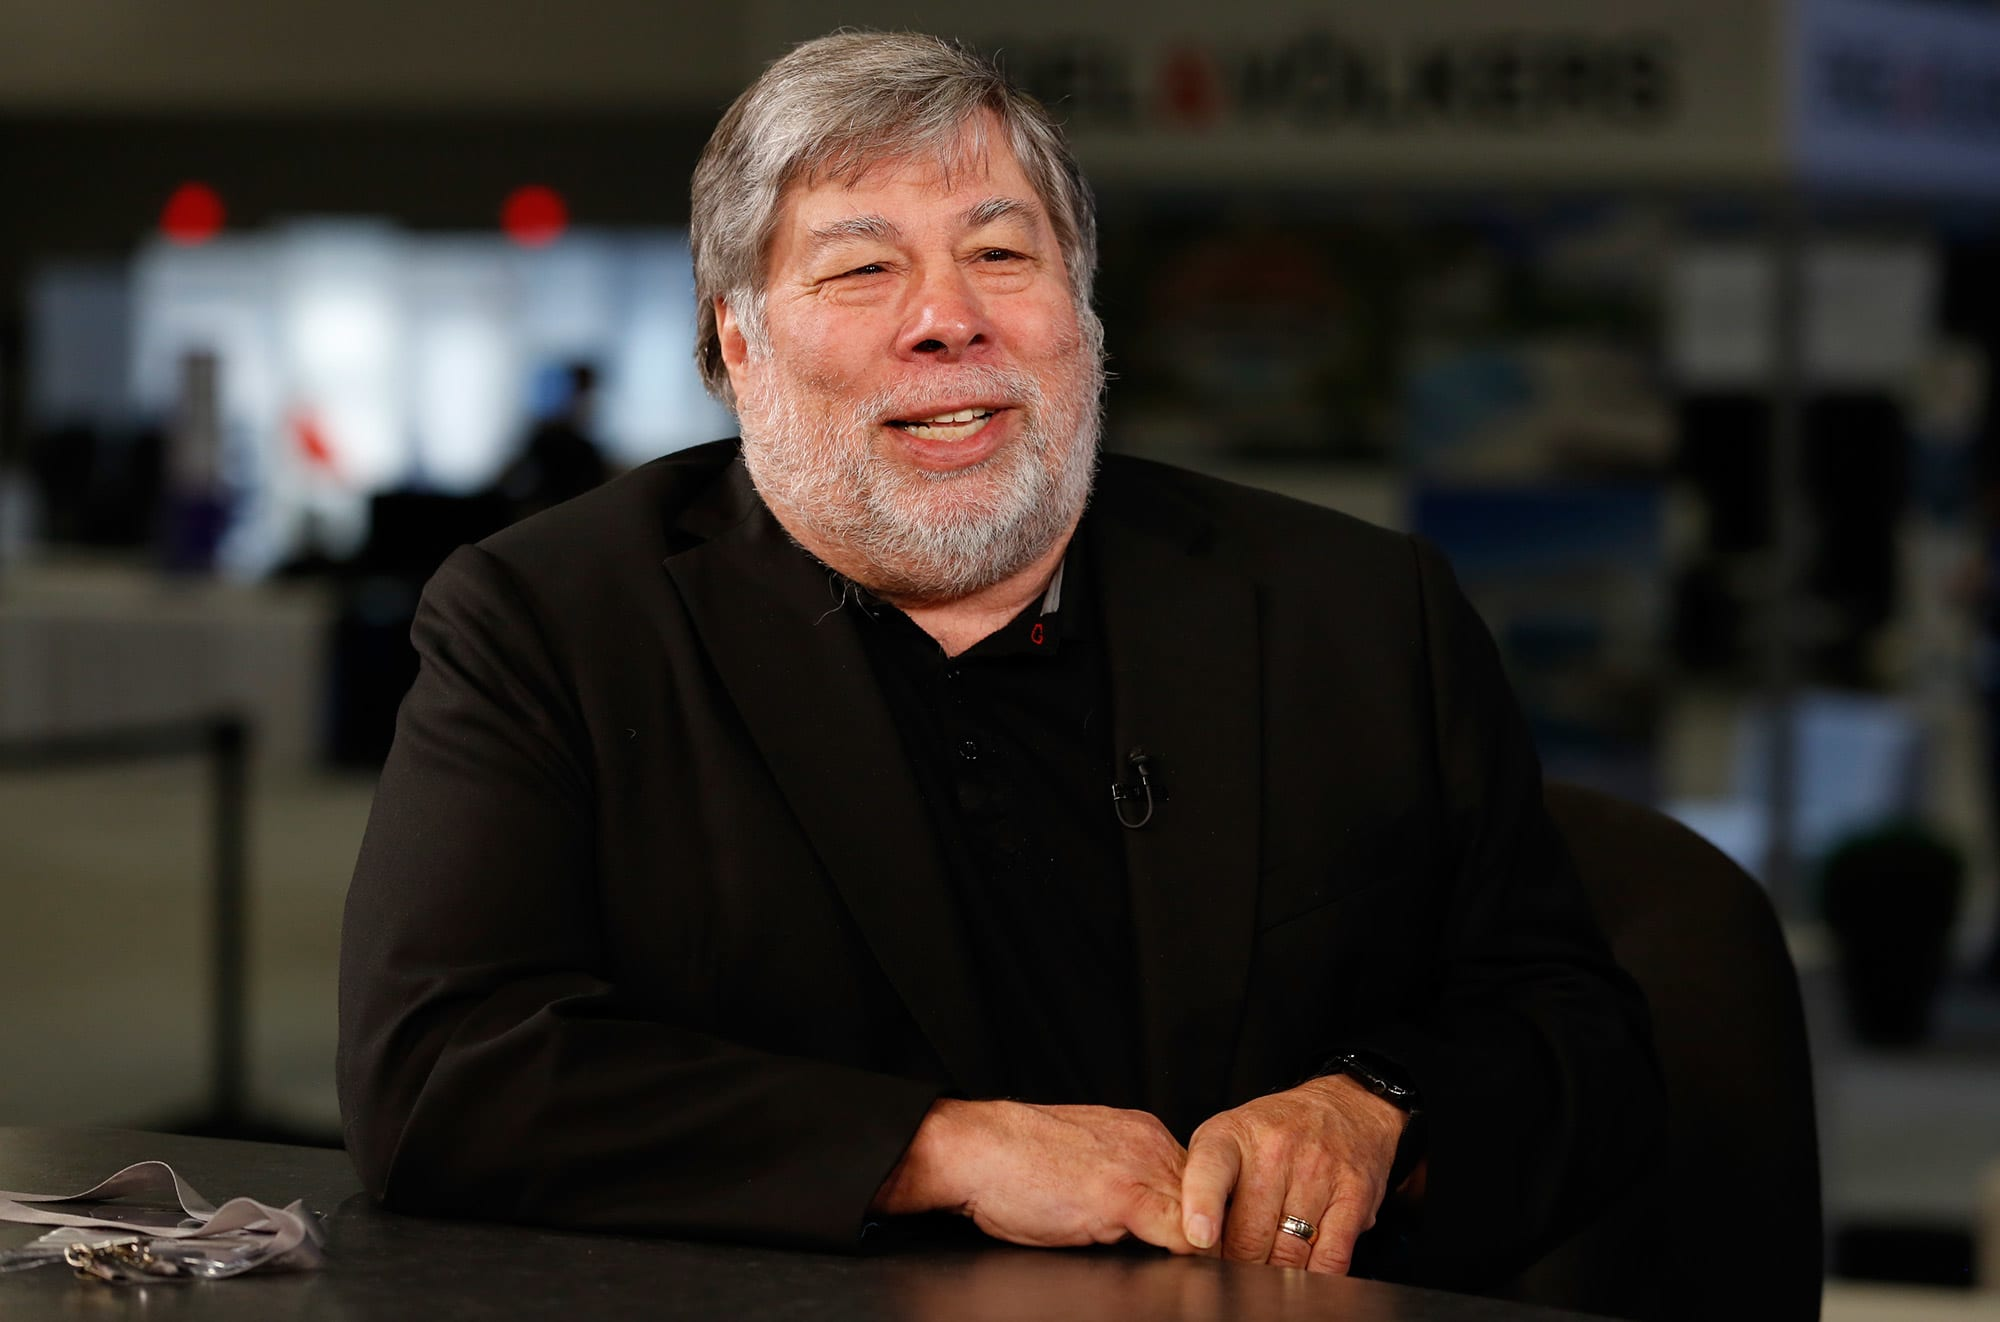 Apple co-founder Steve Wozniak lost his lawsuit against YouTube over videos that used his image to promote a bogus Bitcoin giveaway - AZCoin News